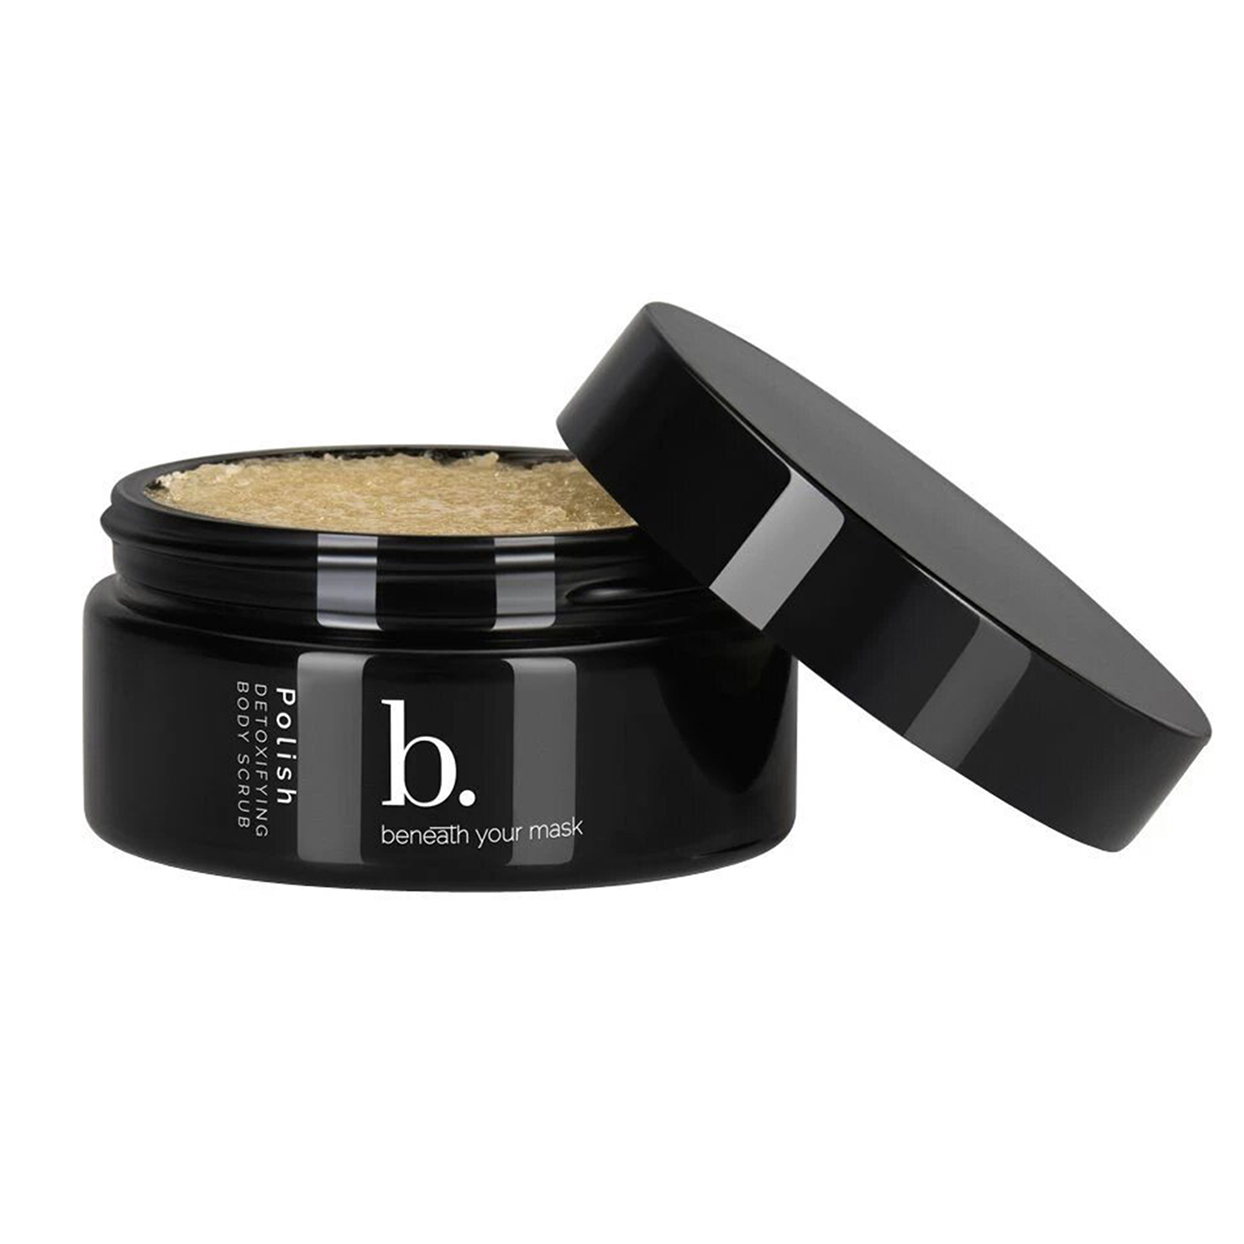 Beneath Your Mask Polish- Detoxifying Body Scrub